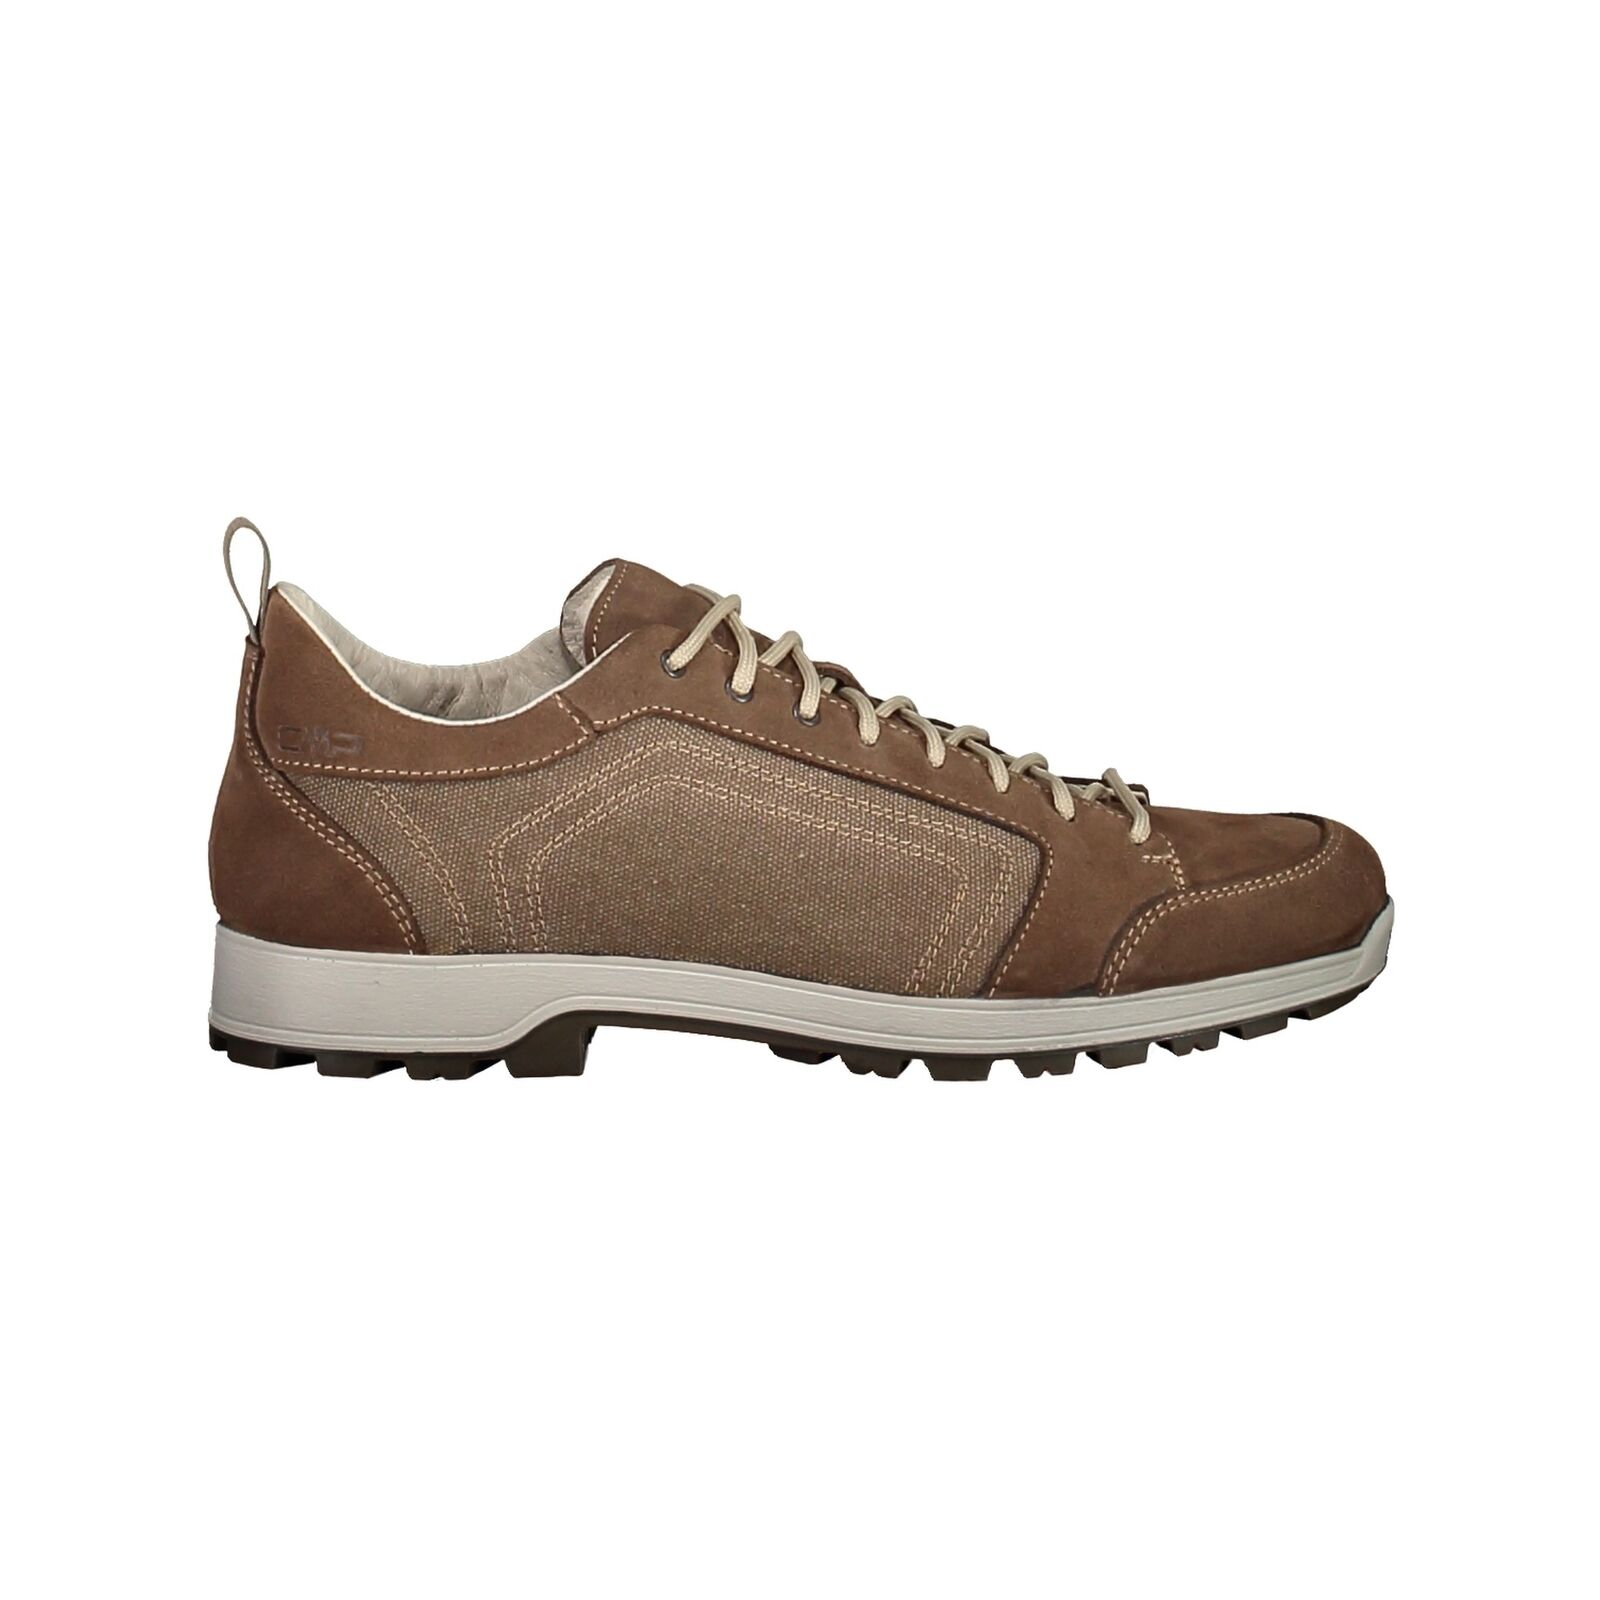 CMP Wanderschuhe Outdoorschuh Atik Canvas Hiking  shoes brown Unifarben  new exclusive high-end